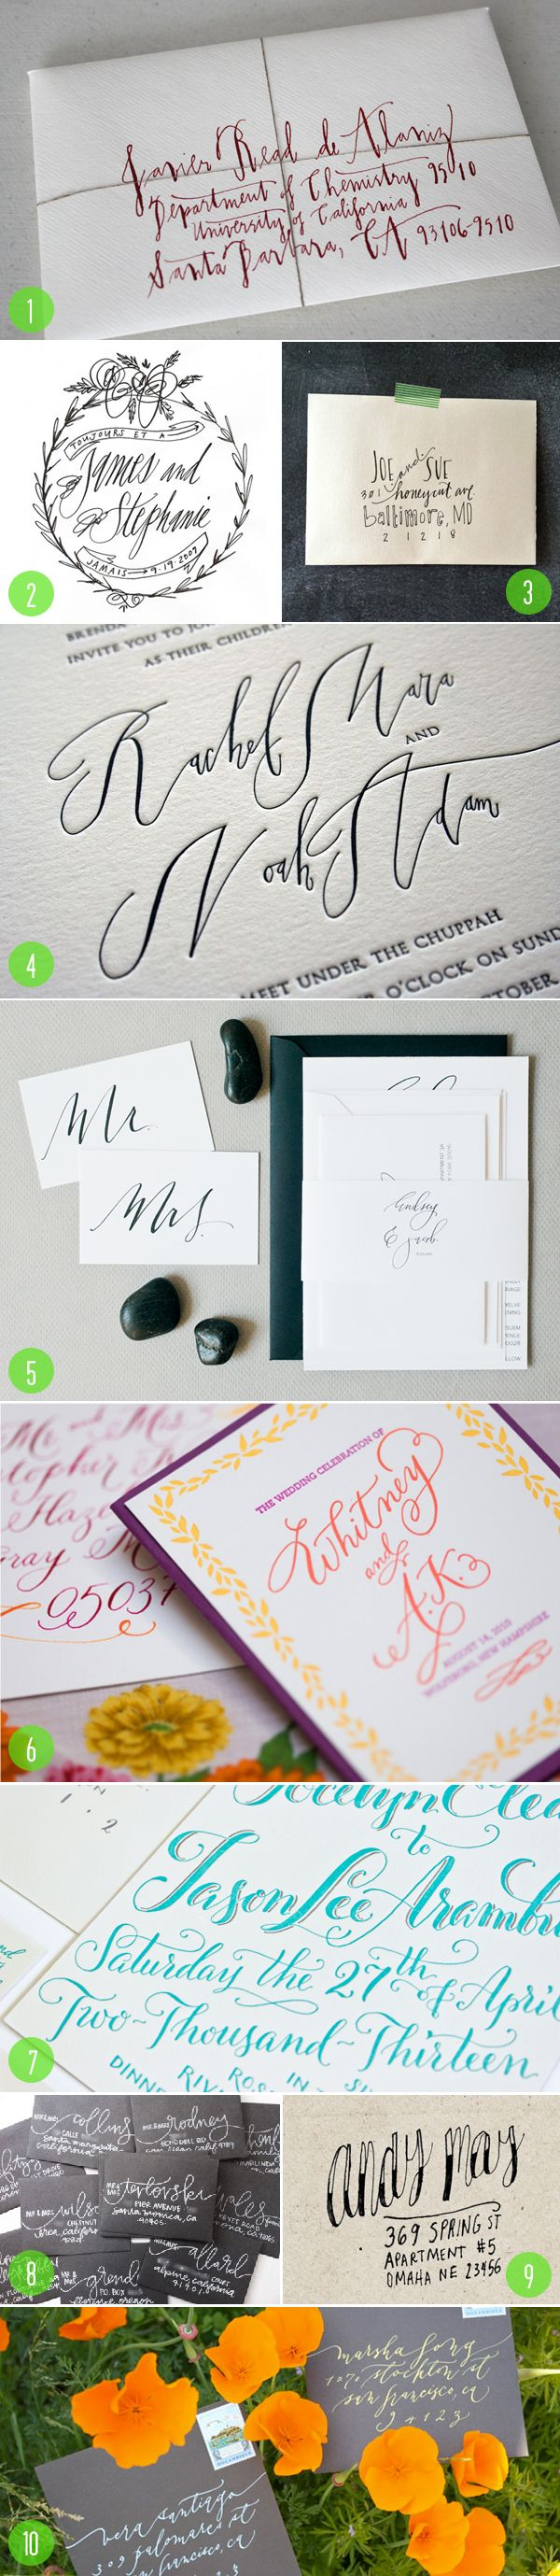 Top 10: Calligraphy | 3